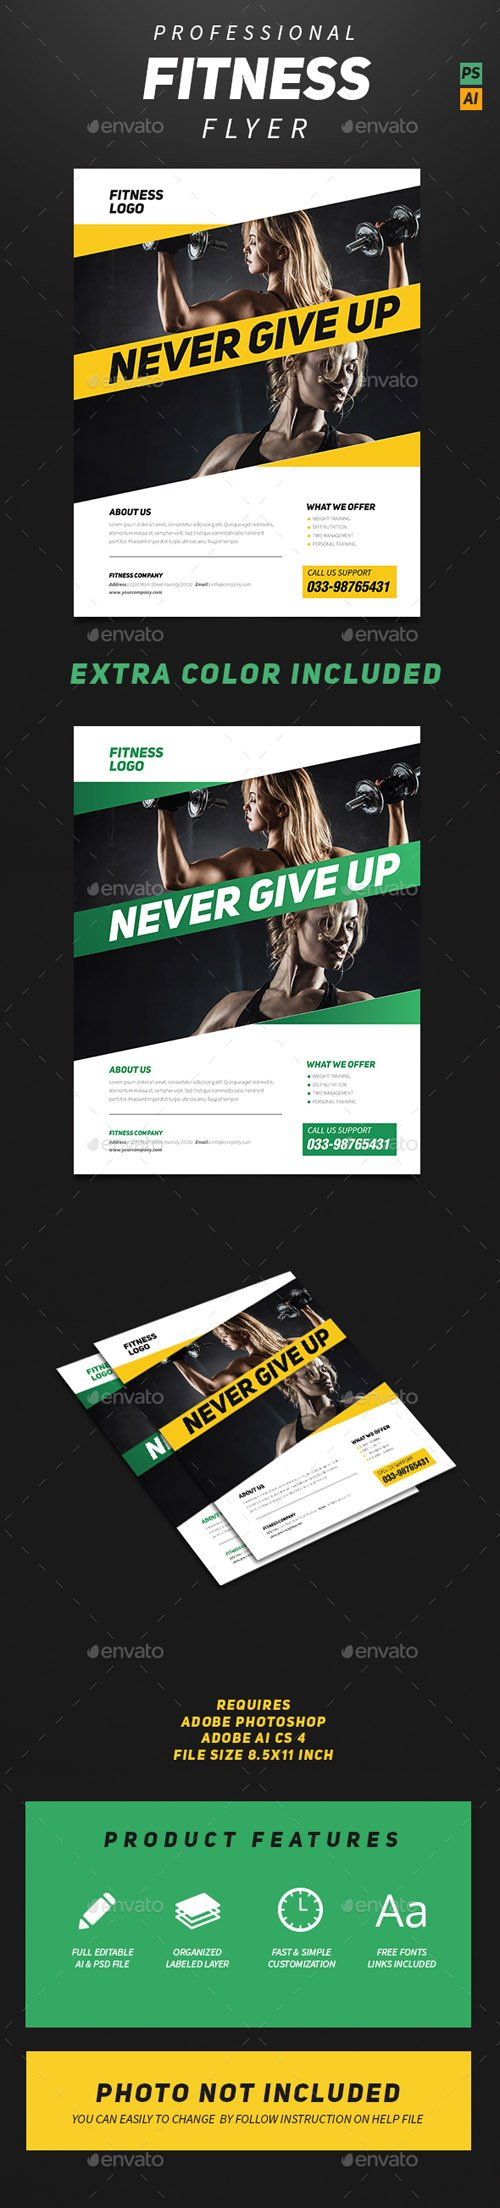 Professional Fitness Flyer 14041614